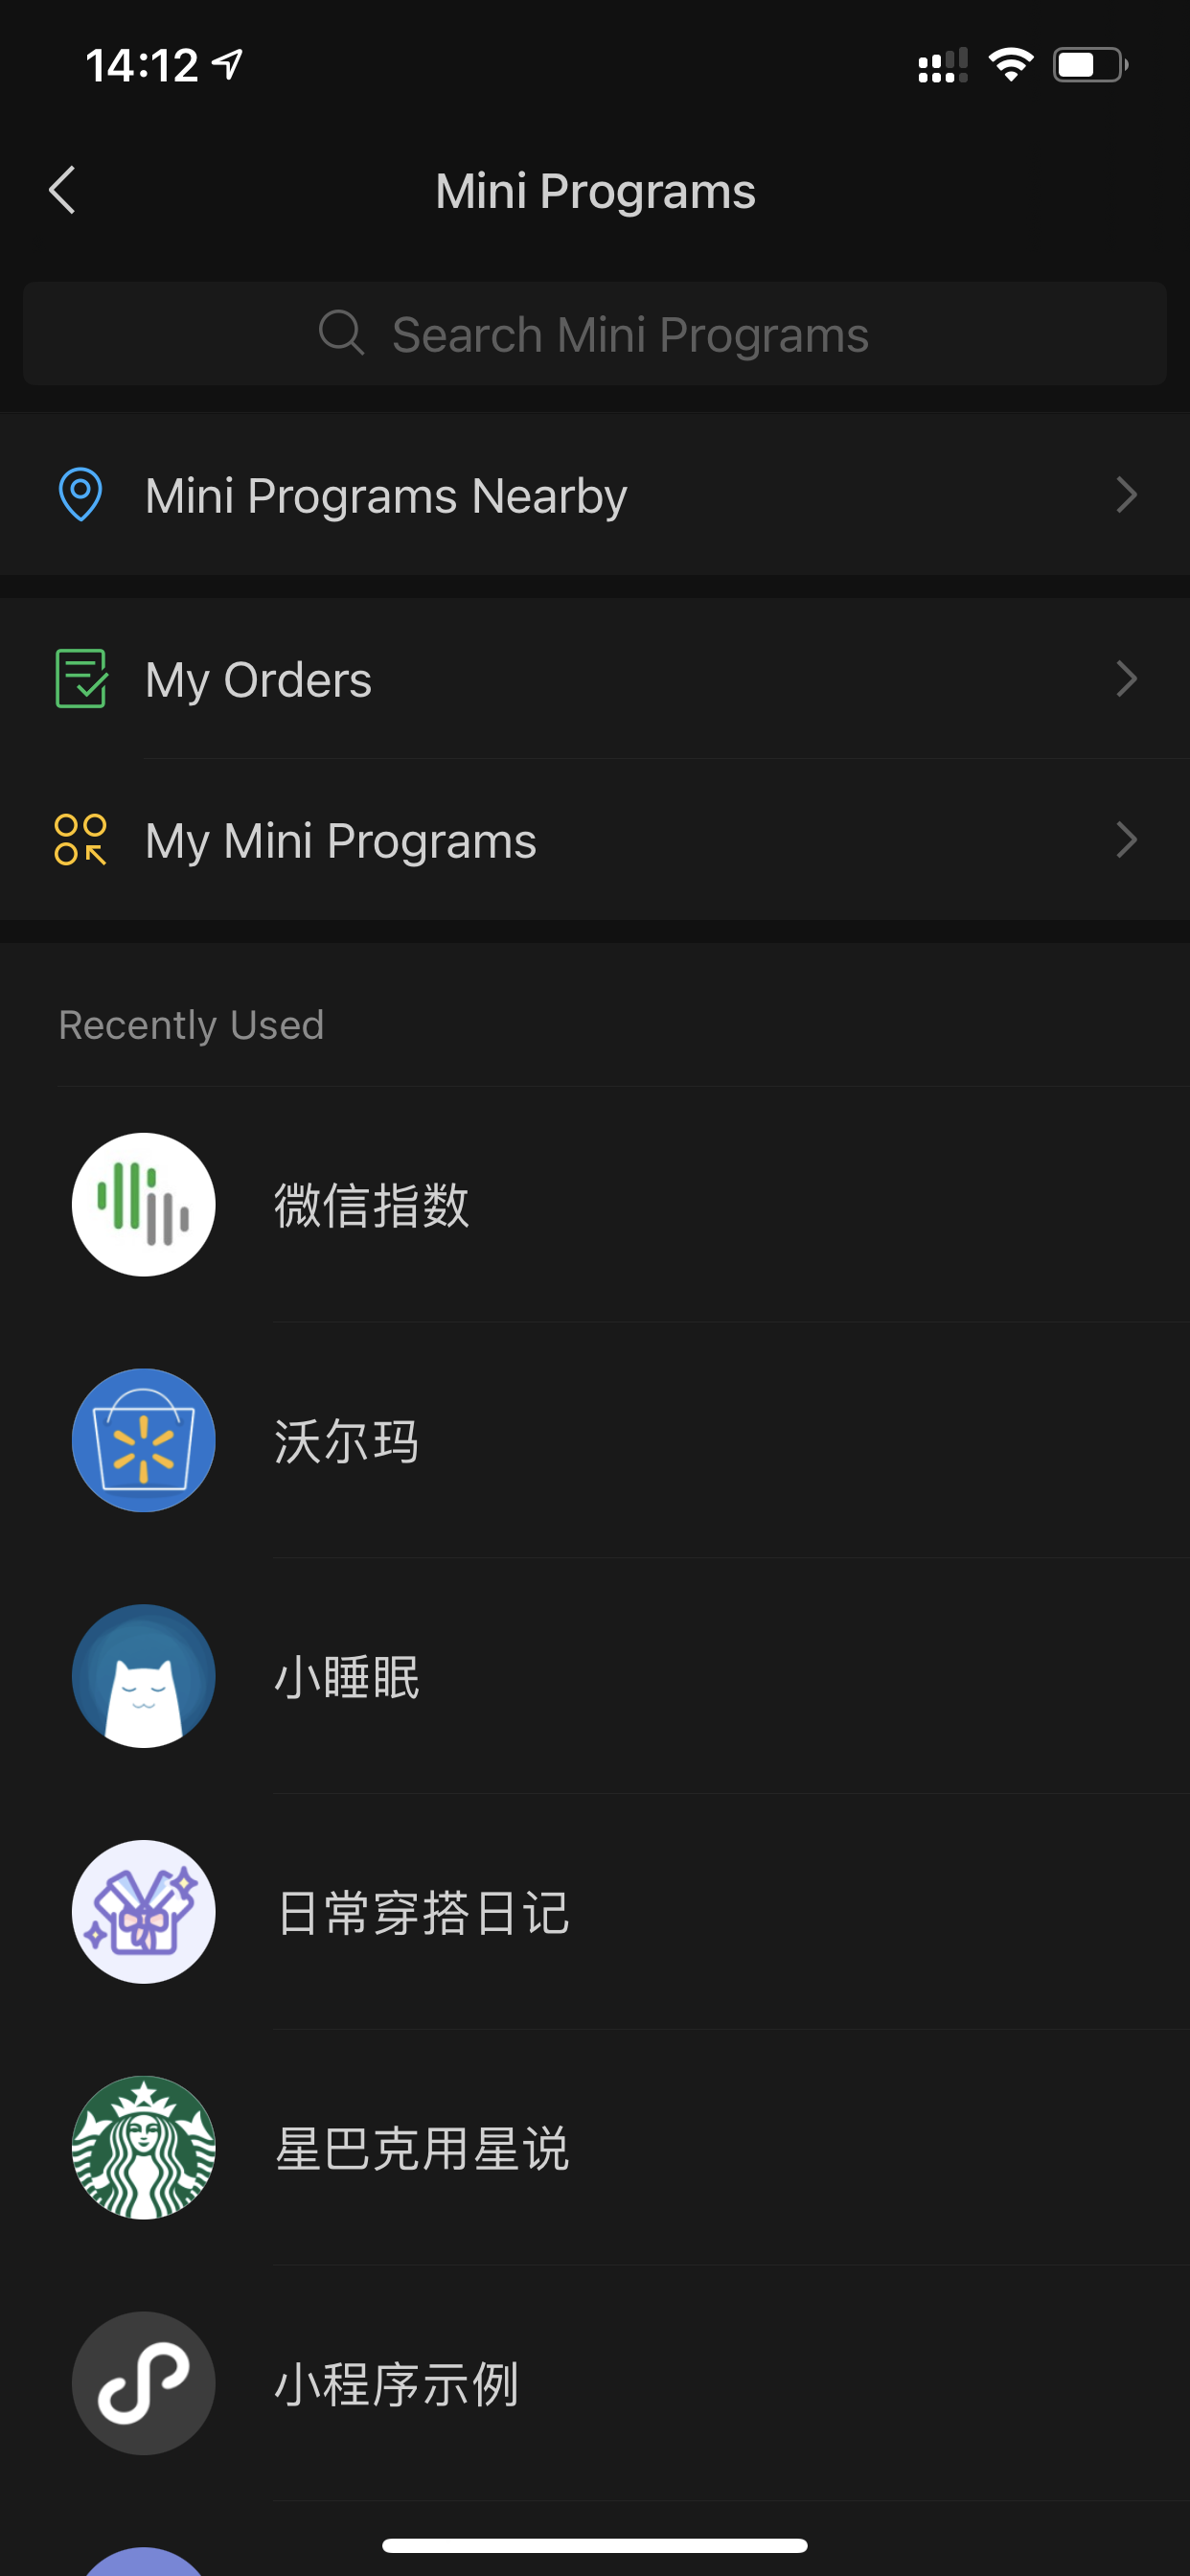 List of recently launched mini apps in the WeChat super app.